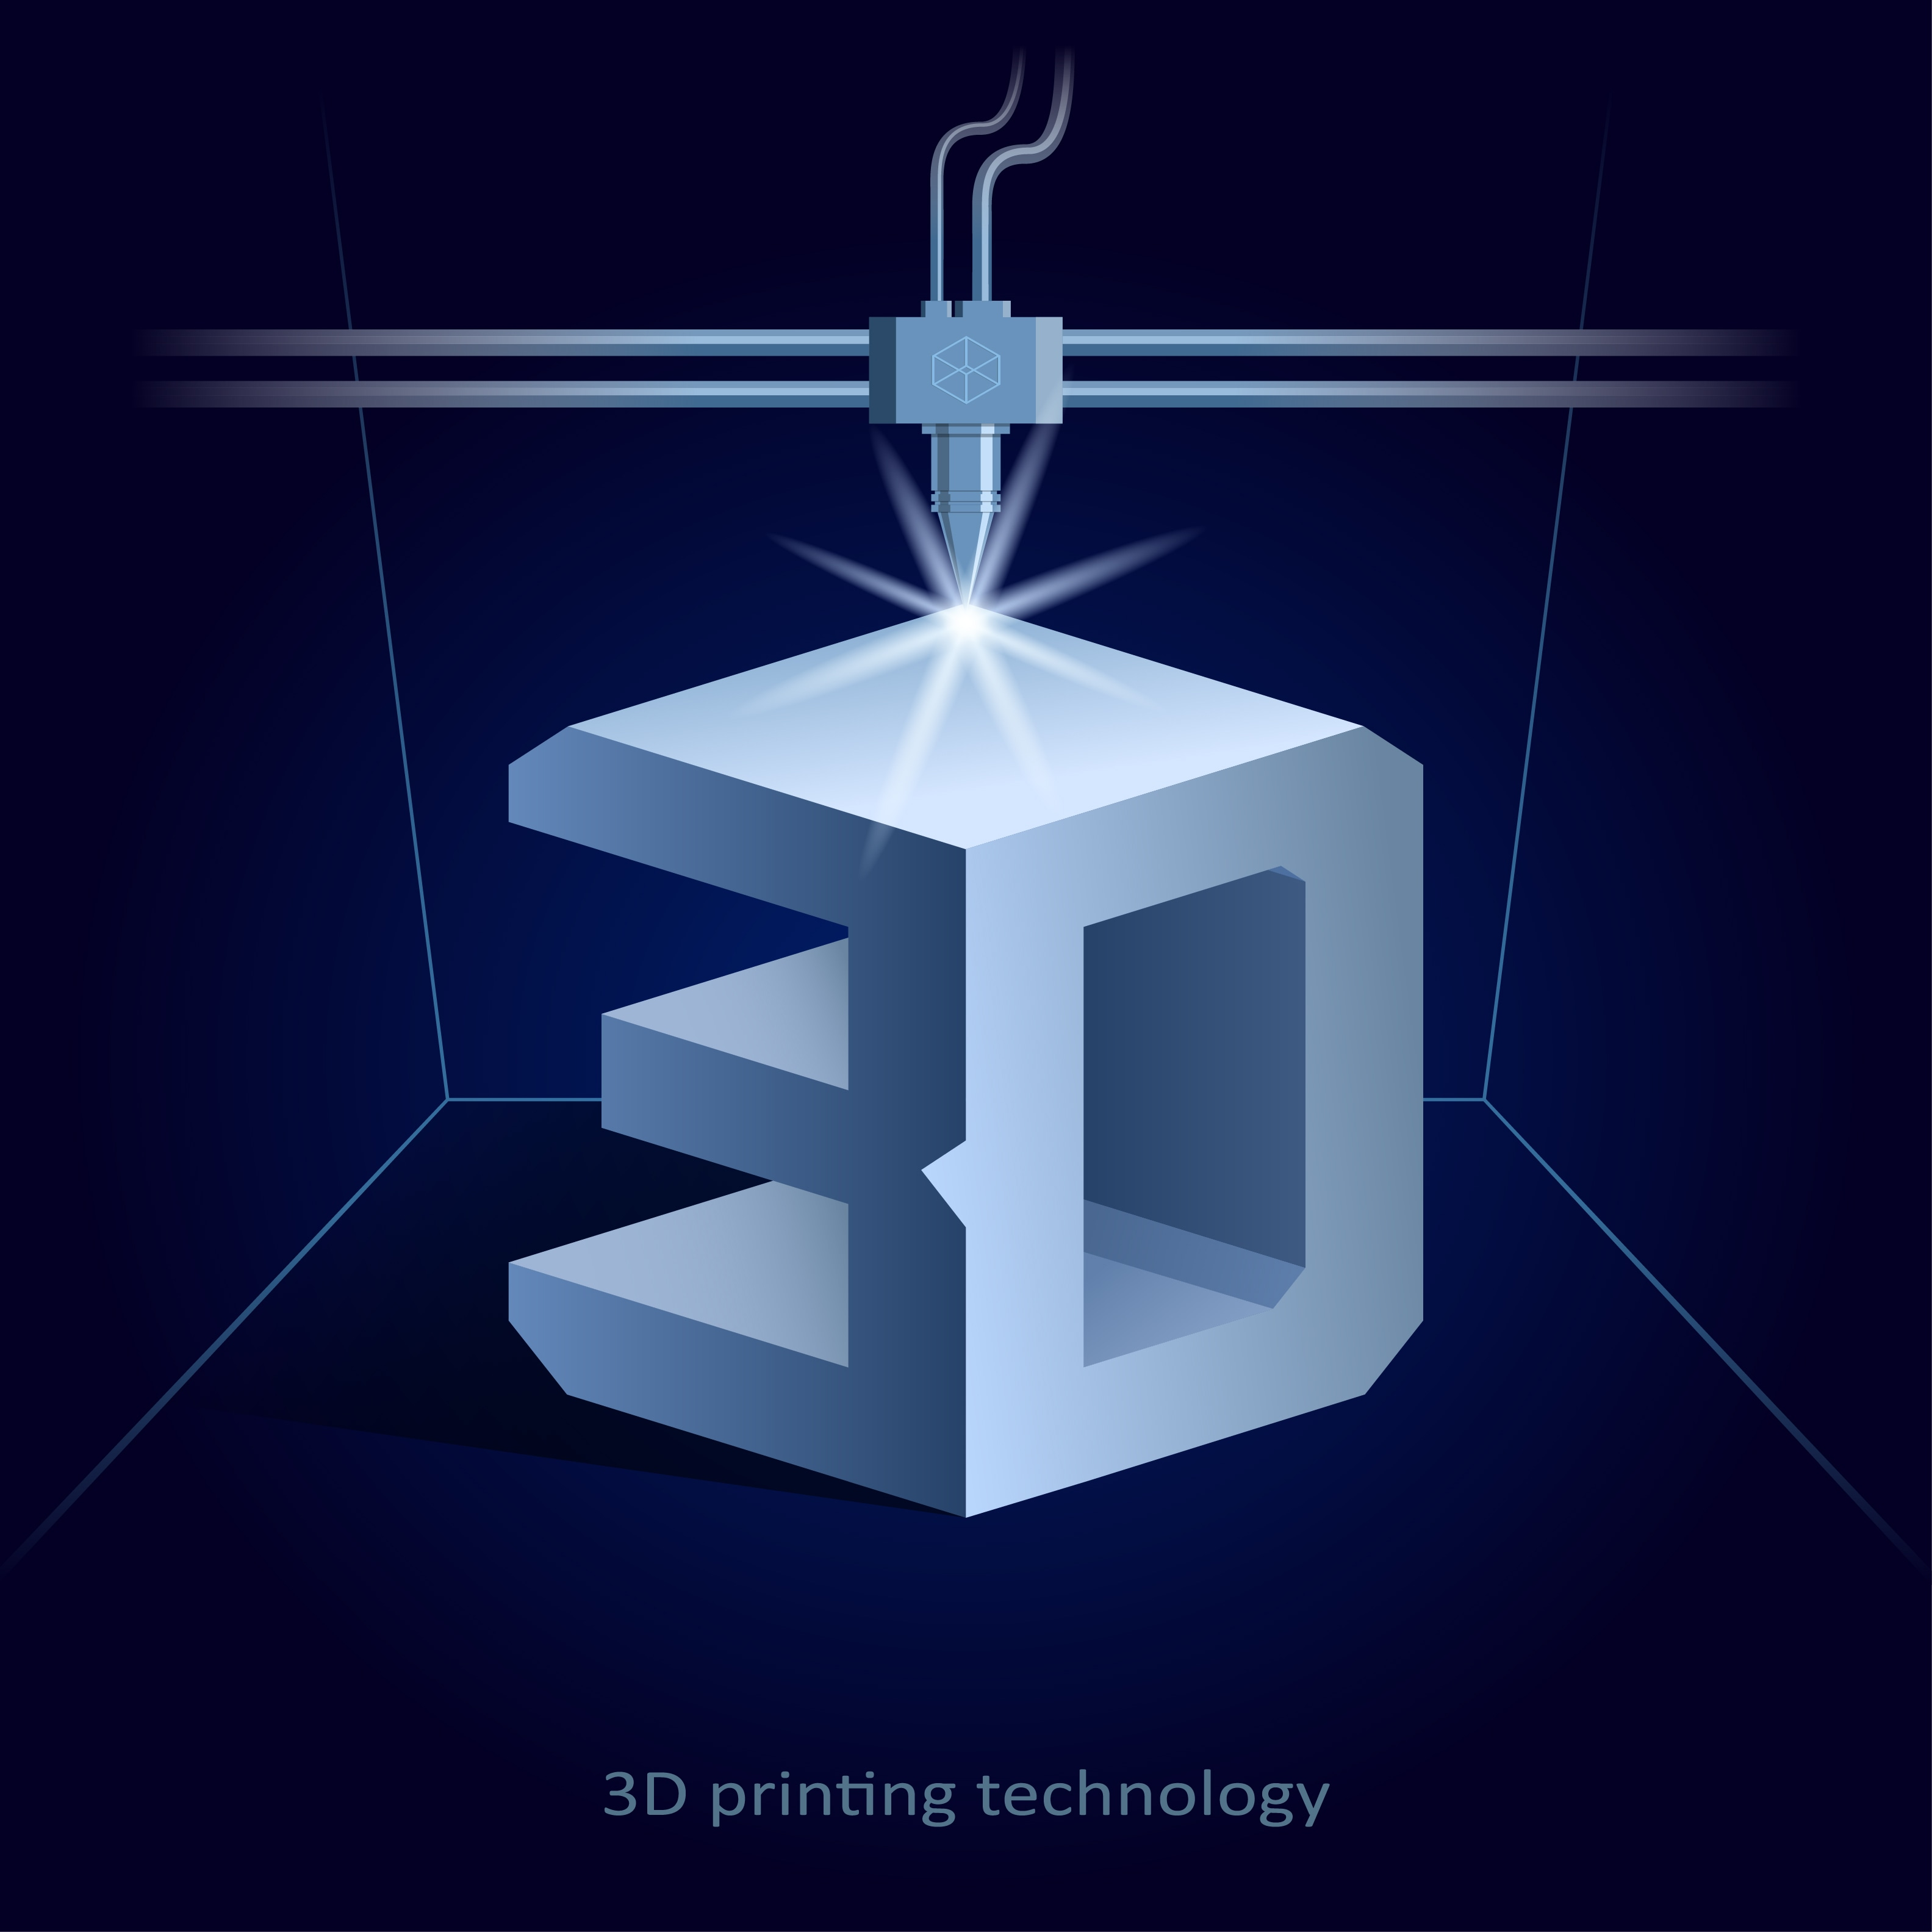 Scientists Observe How Atoms are Packed in Amorphous Materials Using 3D Imaging Method